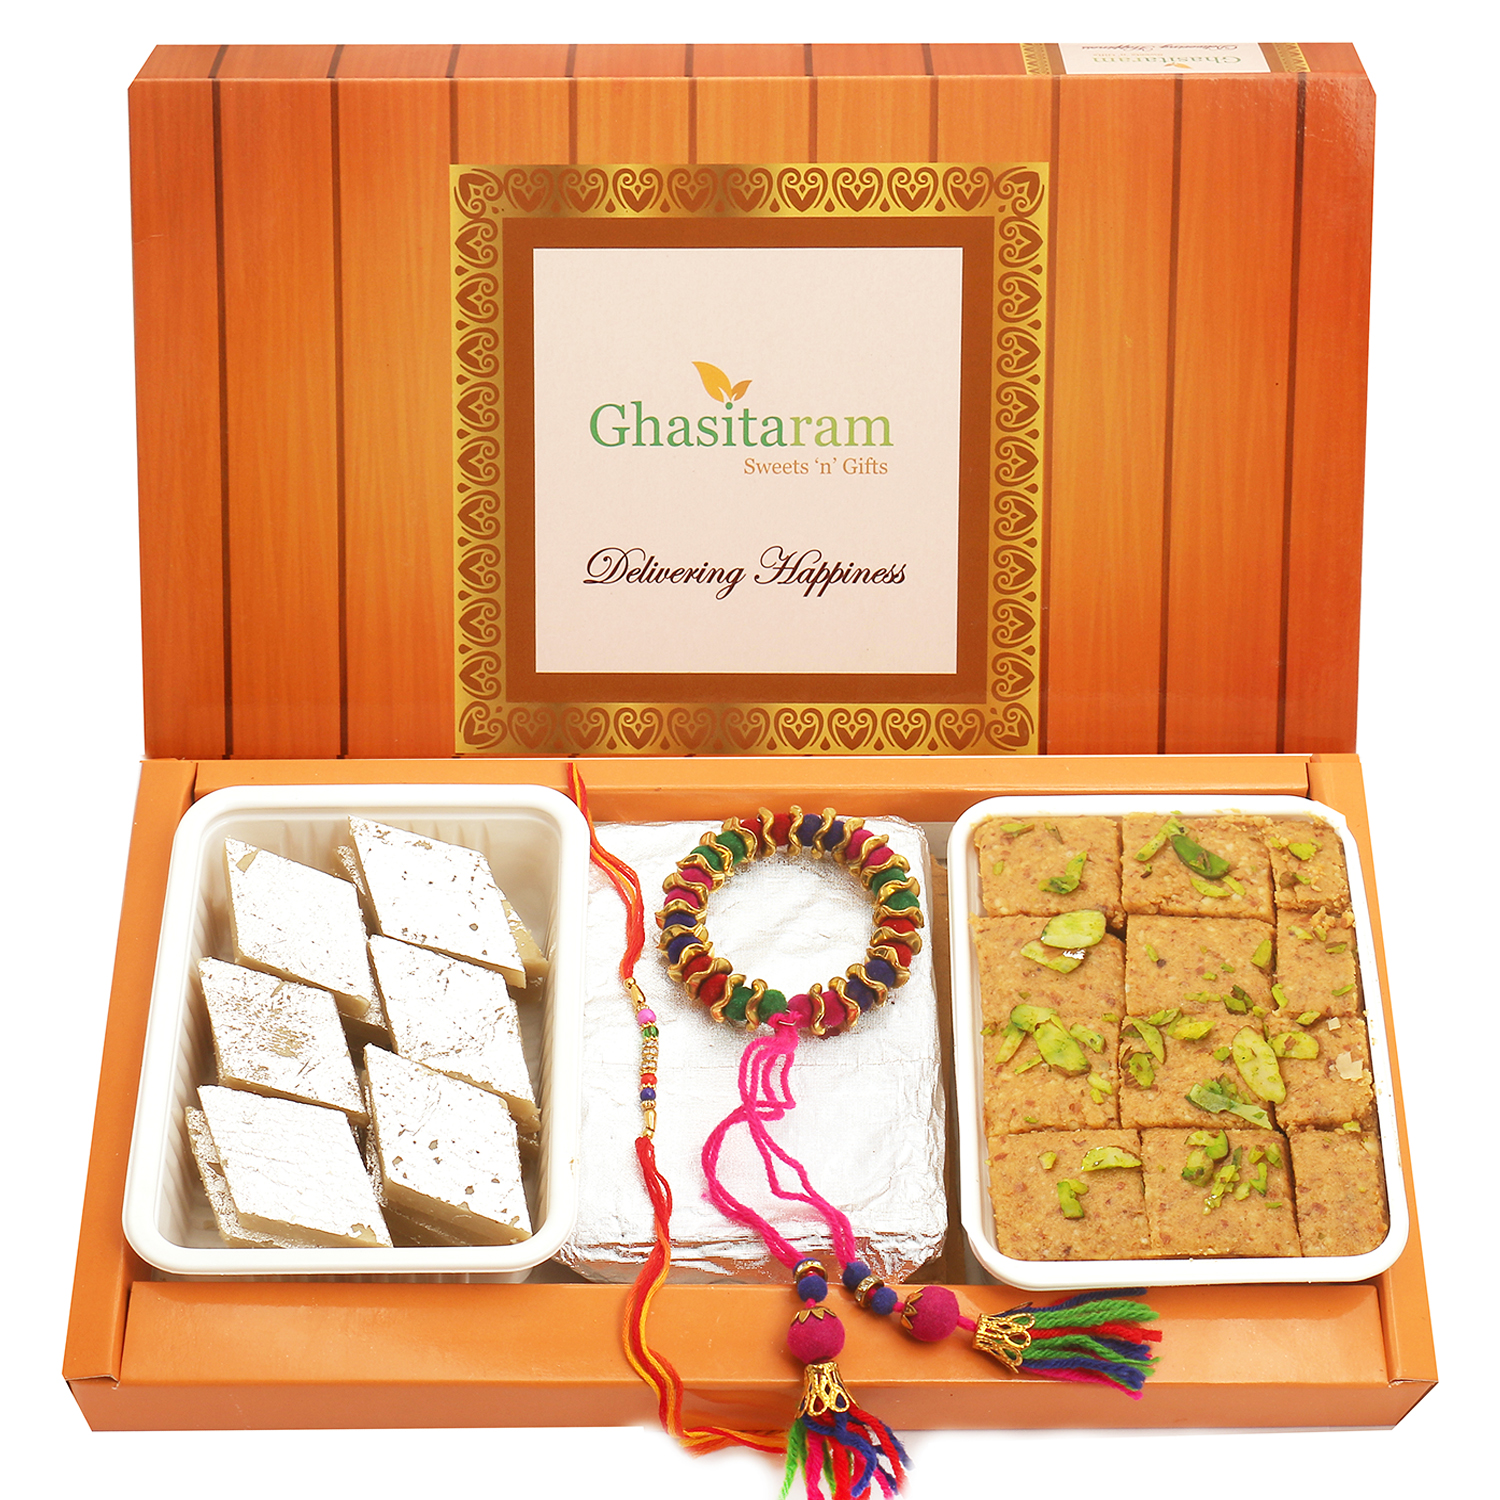 Kaju Katli, Besan Barfi, Pooja Thali and Wools of Bonding Bhaiya Bhabhi Rakhi